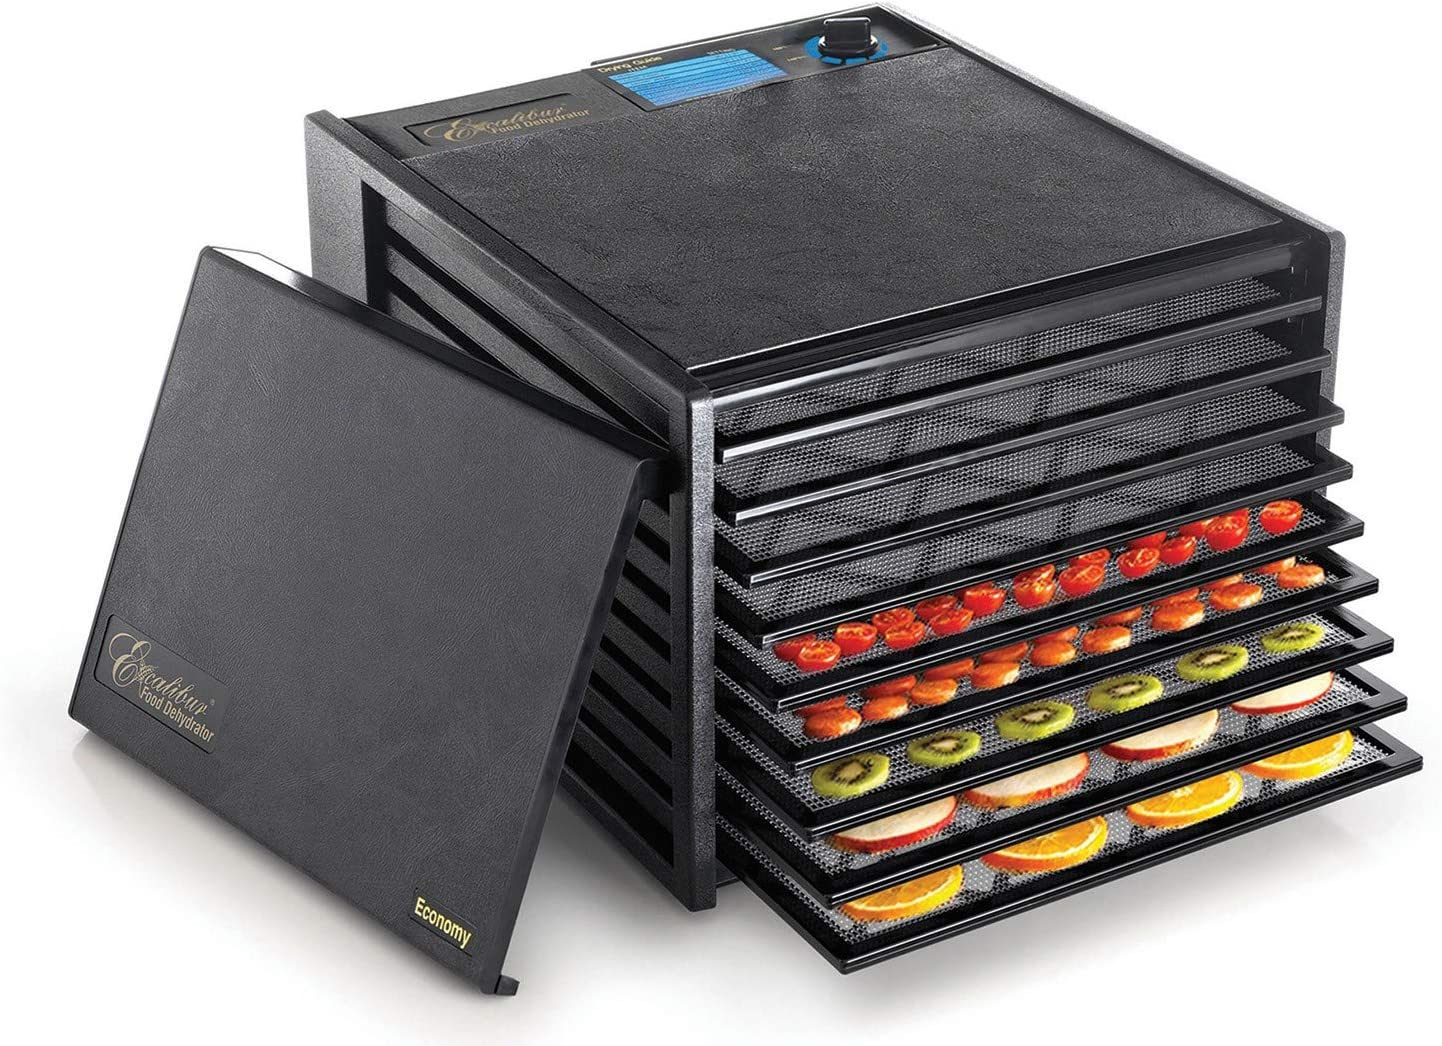 Excalibur 2900ECB 9-Tray Food Dehydrator with Adjustable Thermostat for Temperature Control Patented Technology for Faster and Efficient Drying 15 Square Feet Drying Space Made in USA, 9-Tray, Black